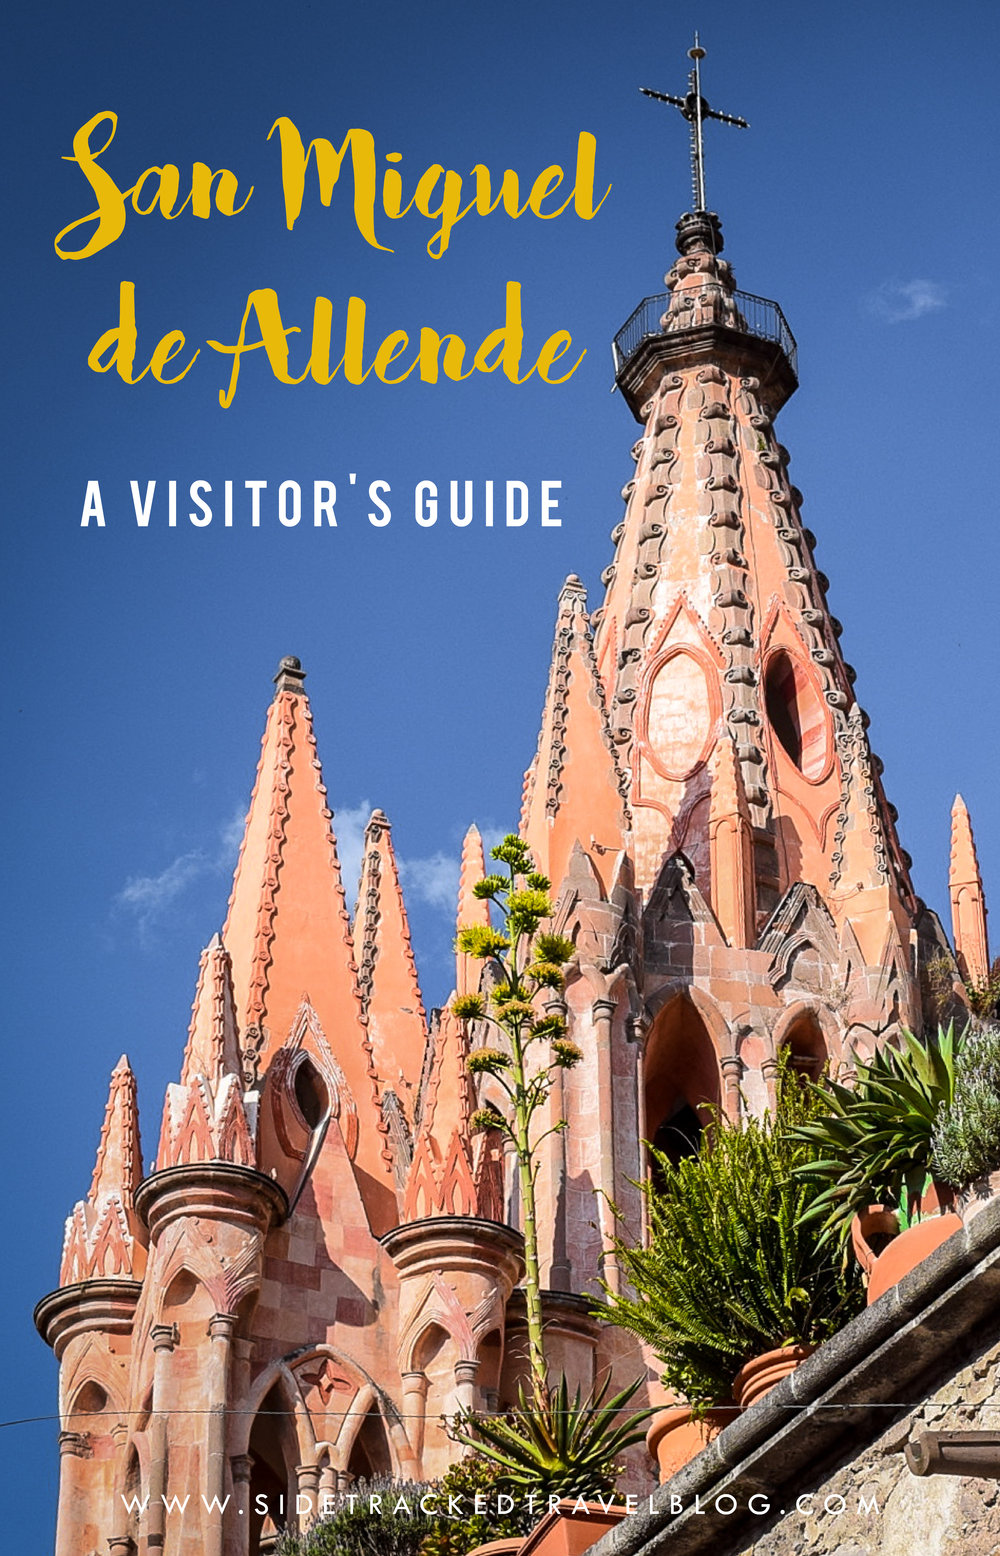 One of the first cities to be declared free from Spanish rule during the Mexican War of Independence, you'd be hard-pressed to find a colonial city in Mexico more beautiful and well-preserved than San Miguel de Allende. This guide covers what to see and do, the best places to eat and drink, and other useful things to know.